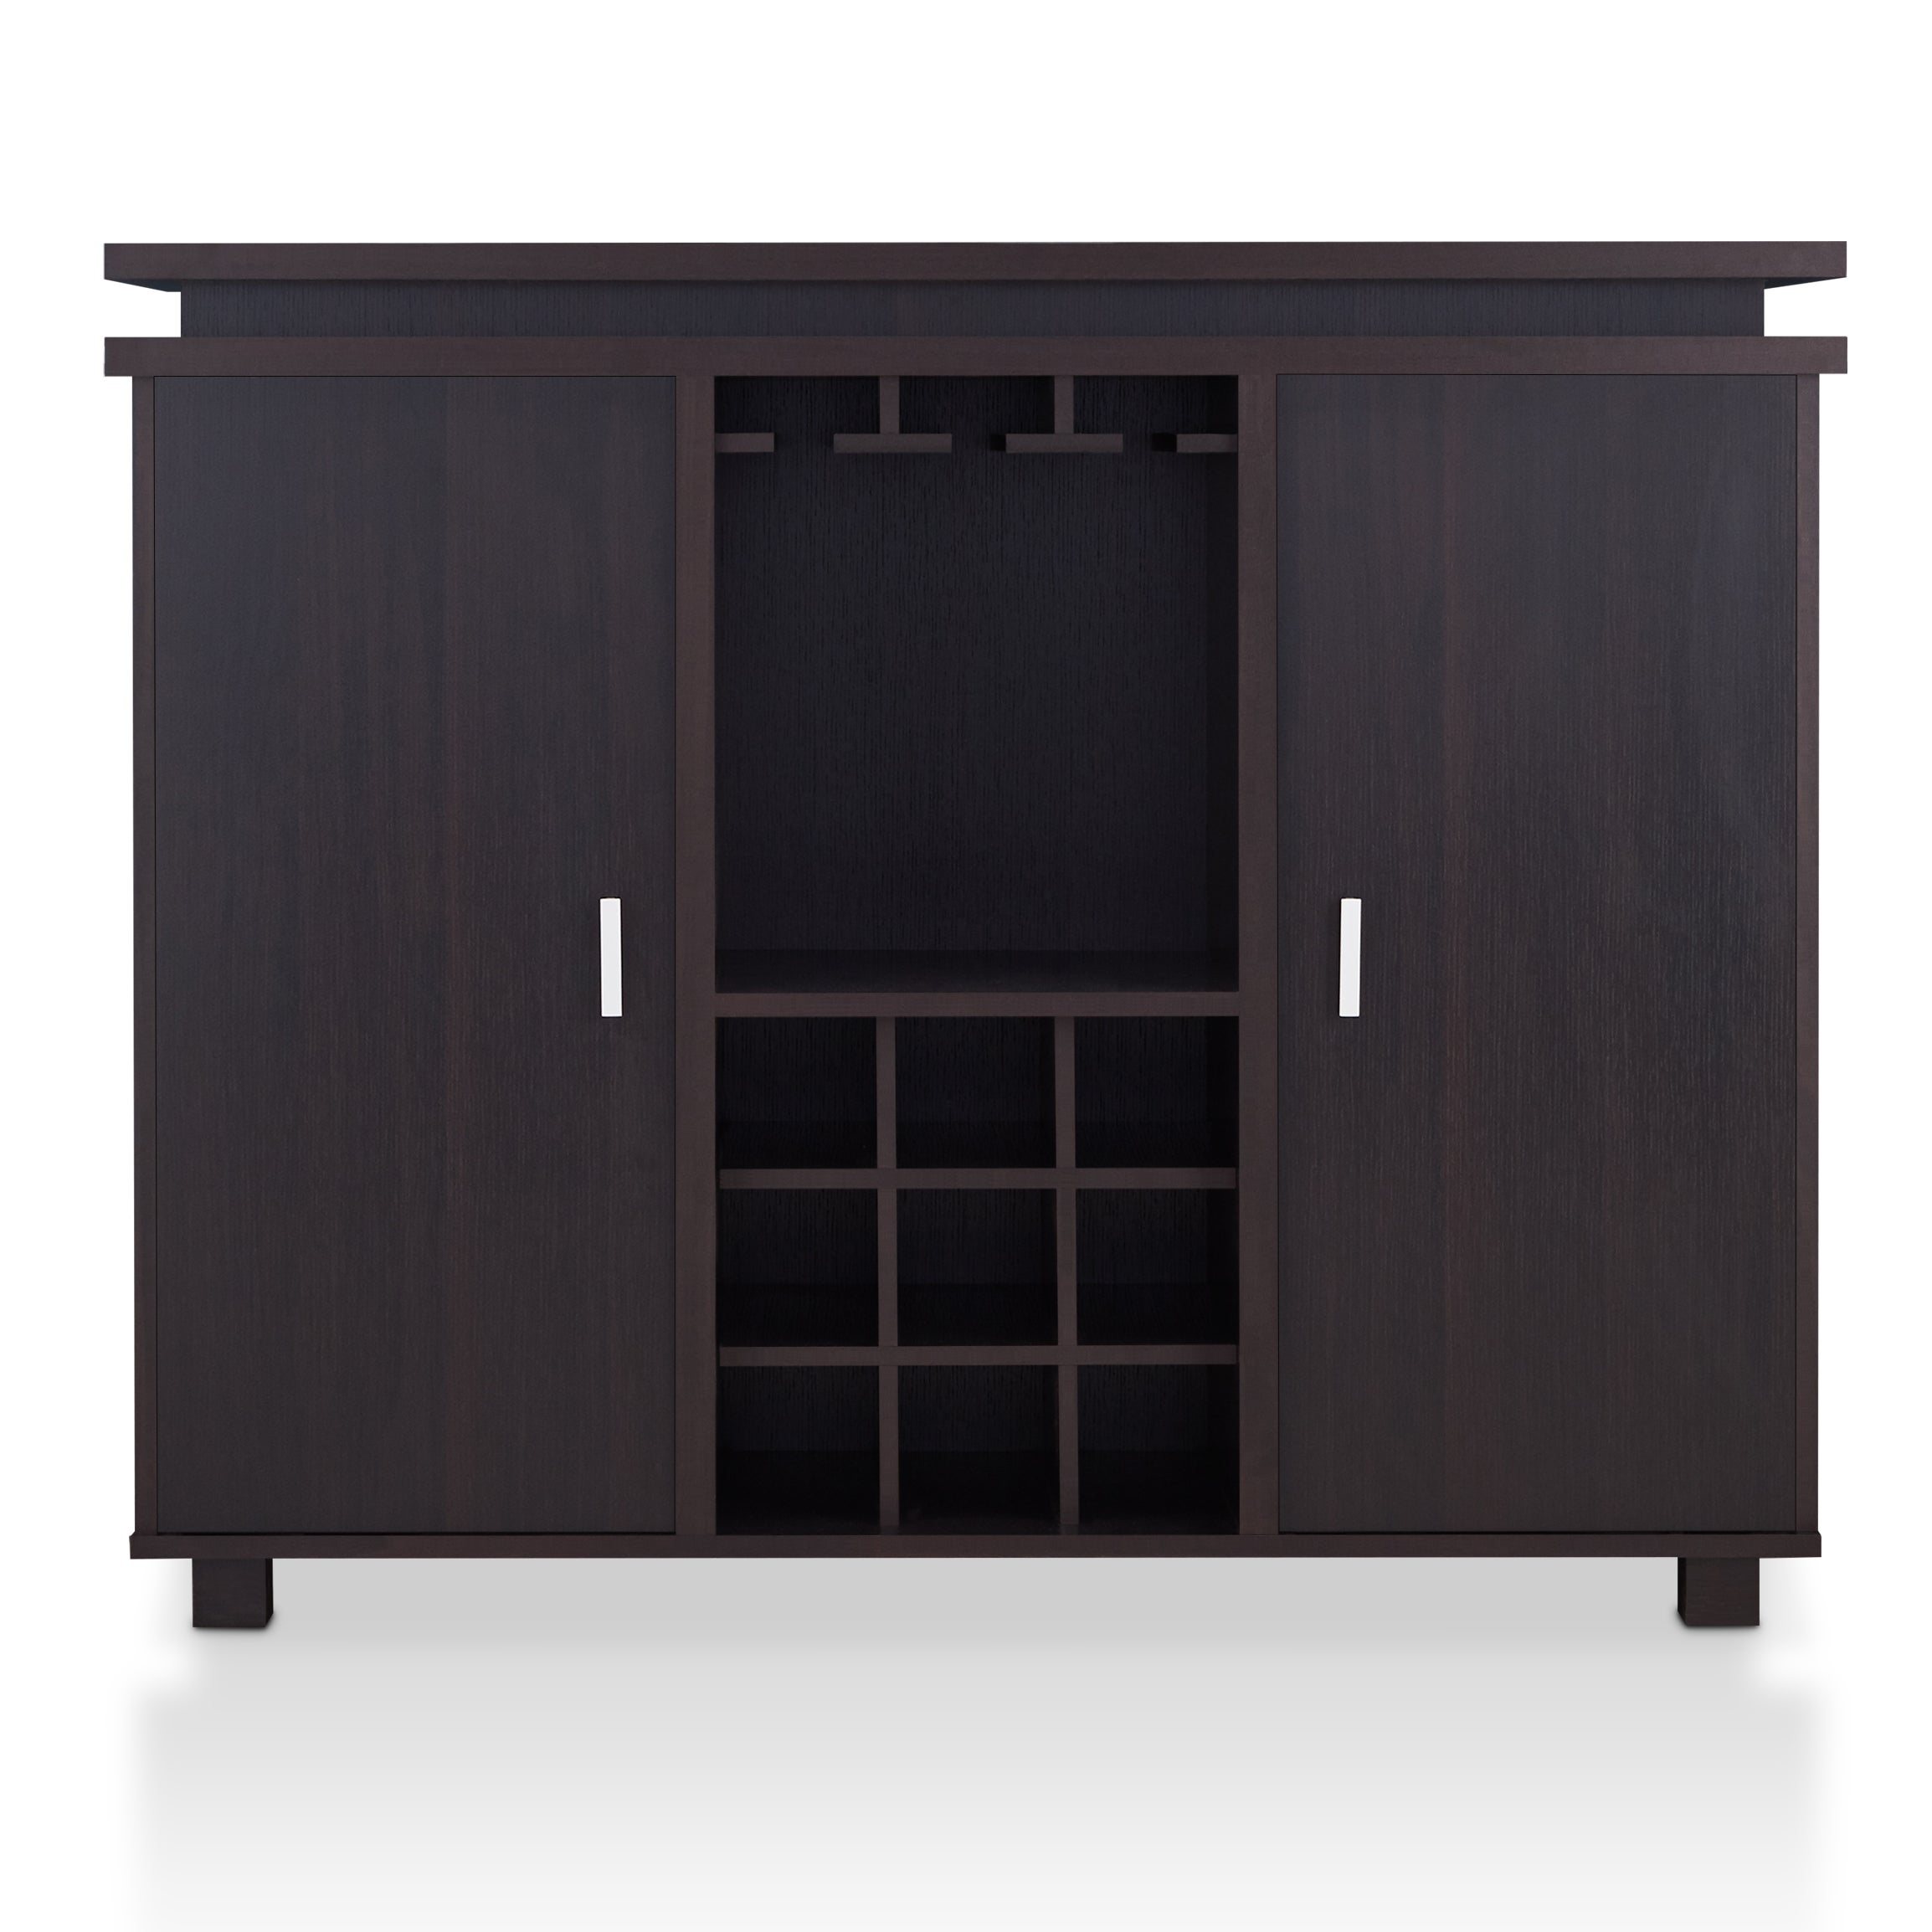 Furniture Of America Mirande Contemporary Espresso Dining Buffet With Wine Storage Within Contemporary Espresso Dining Buffets (View 19 of 30)